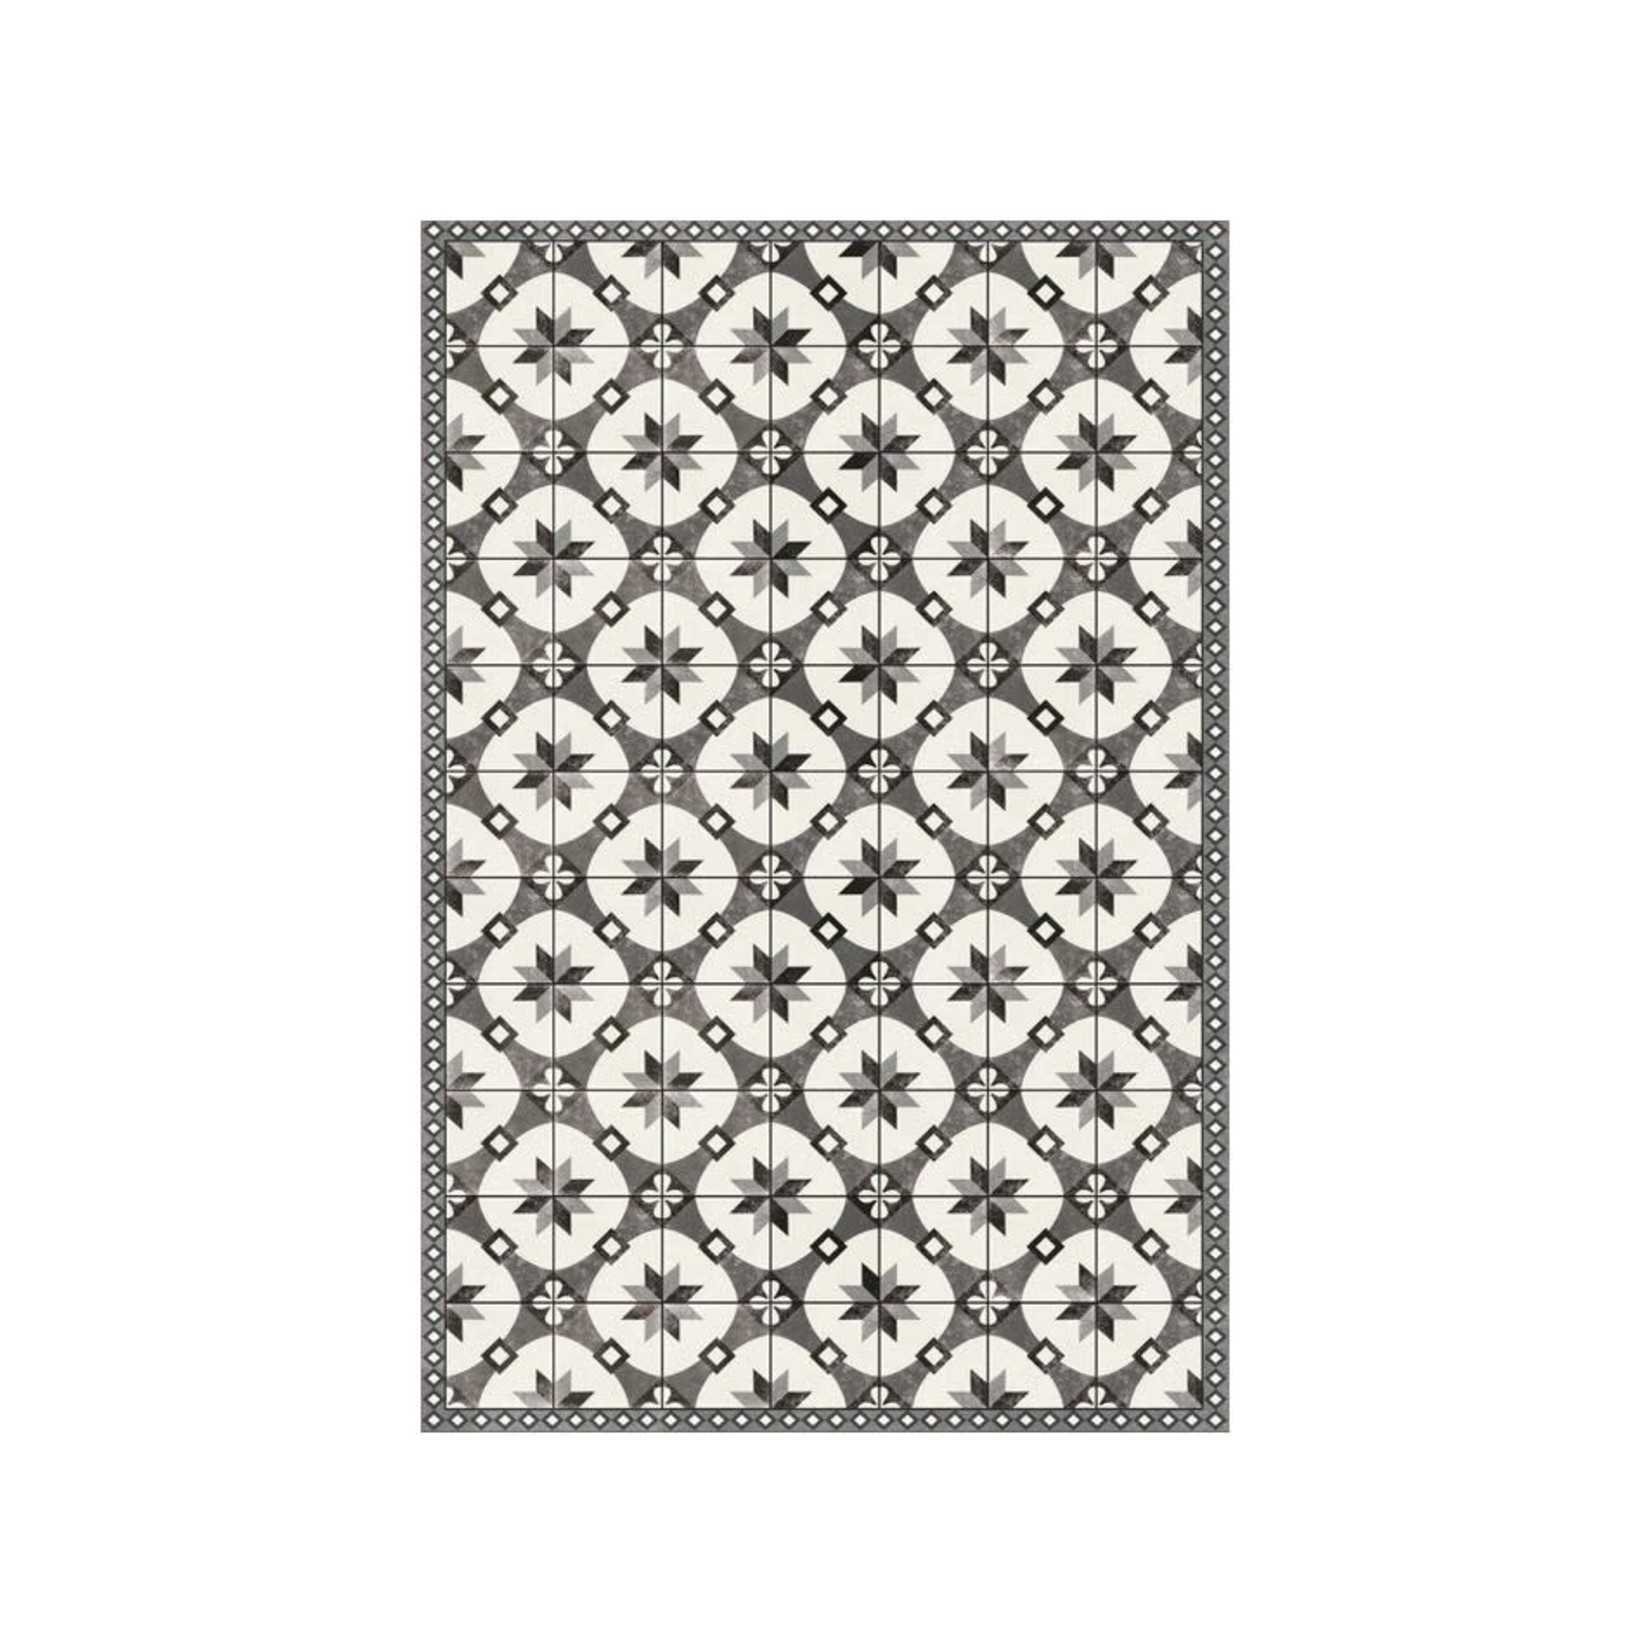 Grey Tiles Floor Mat